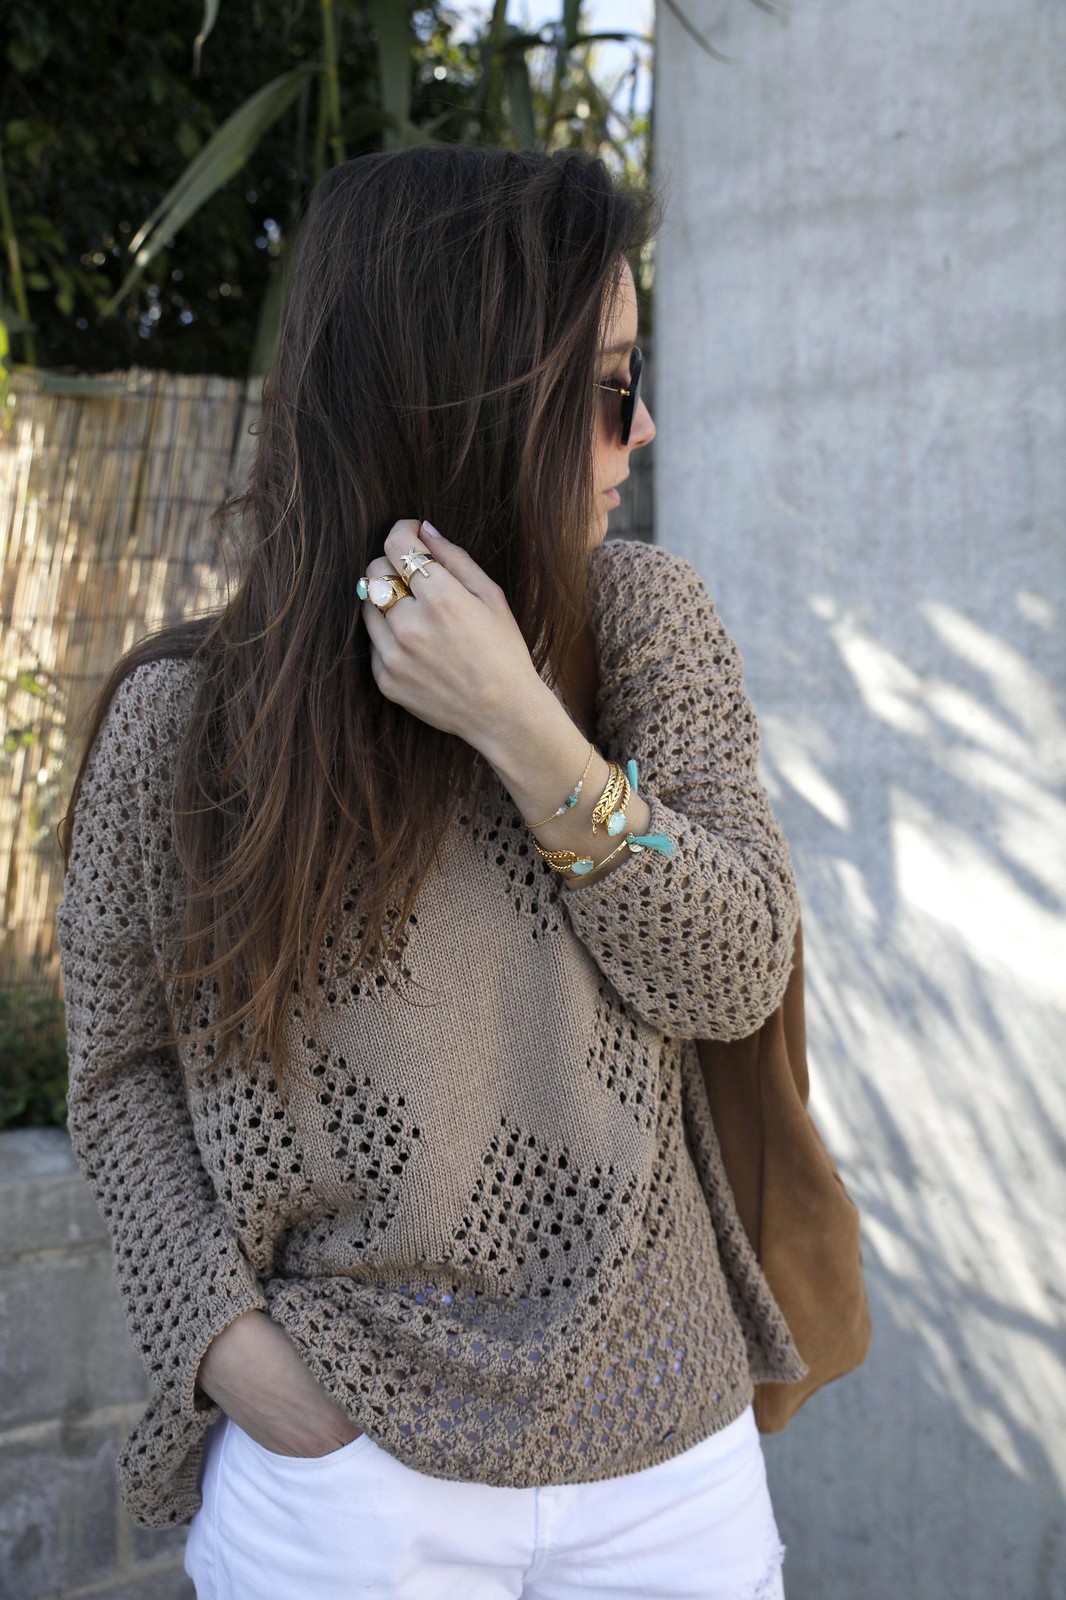 07_SPRING_NEUTRAL_OUTFIT_STREET_STYLE_FASHION_BLOGGER_INFLUENCER_BARCELONA_THEGUESTGIRL